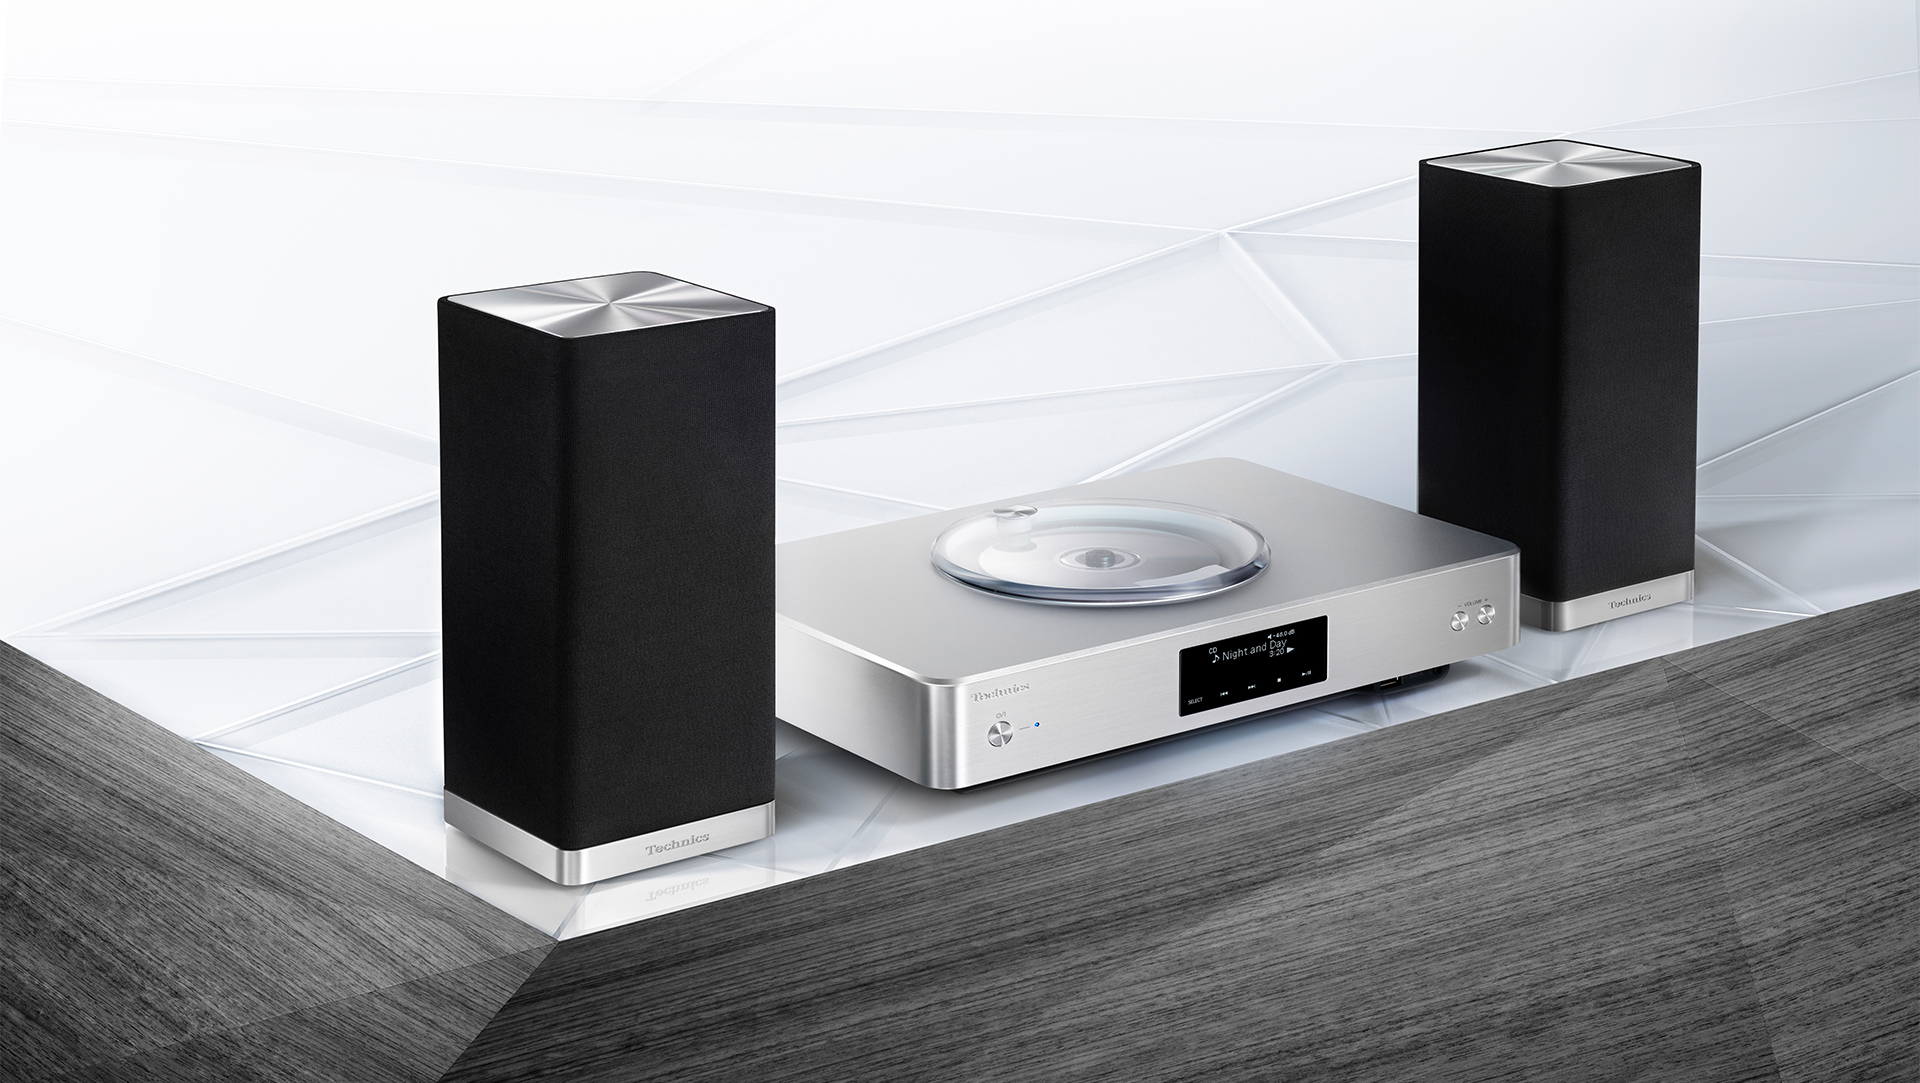 A 2500 Cd Player From Technics For The Audiophile Of The